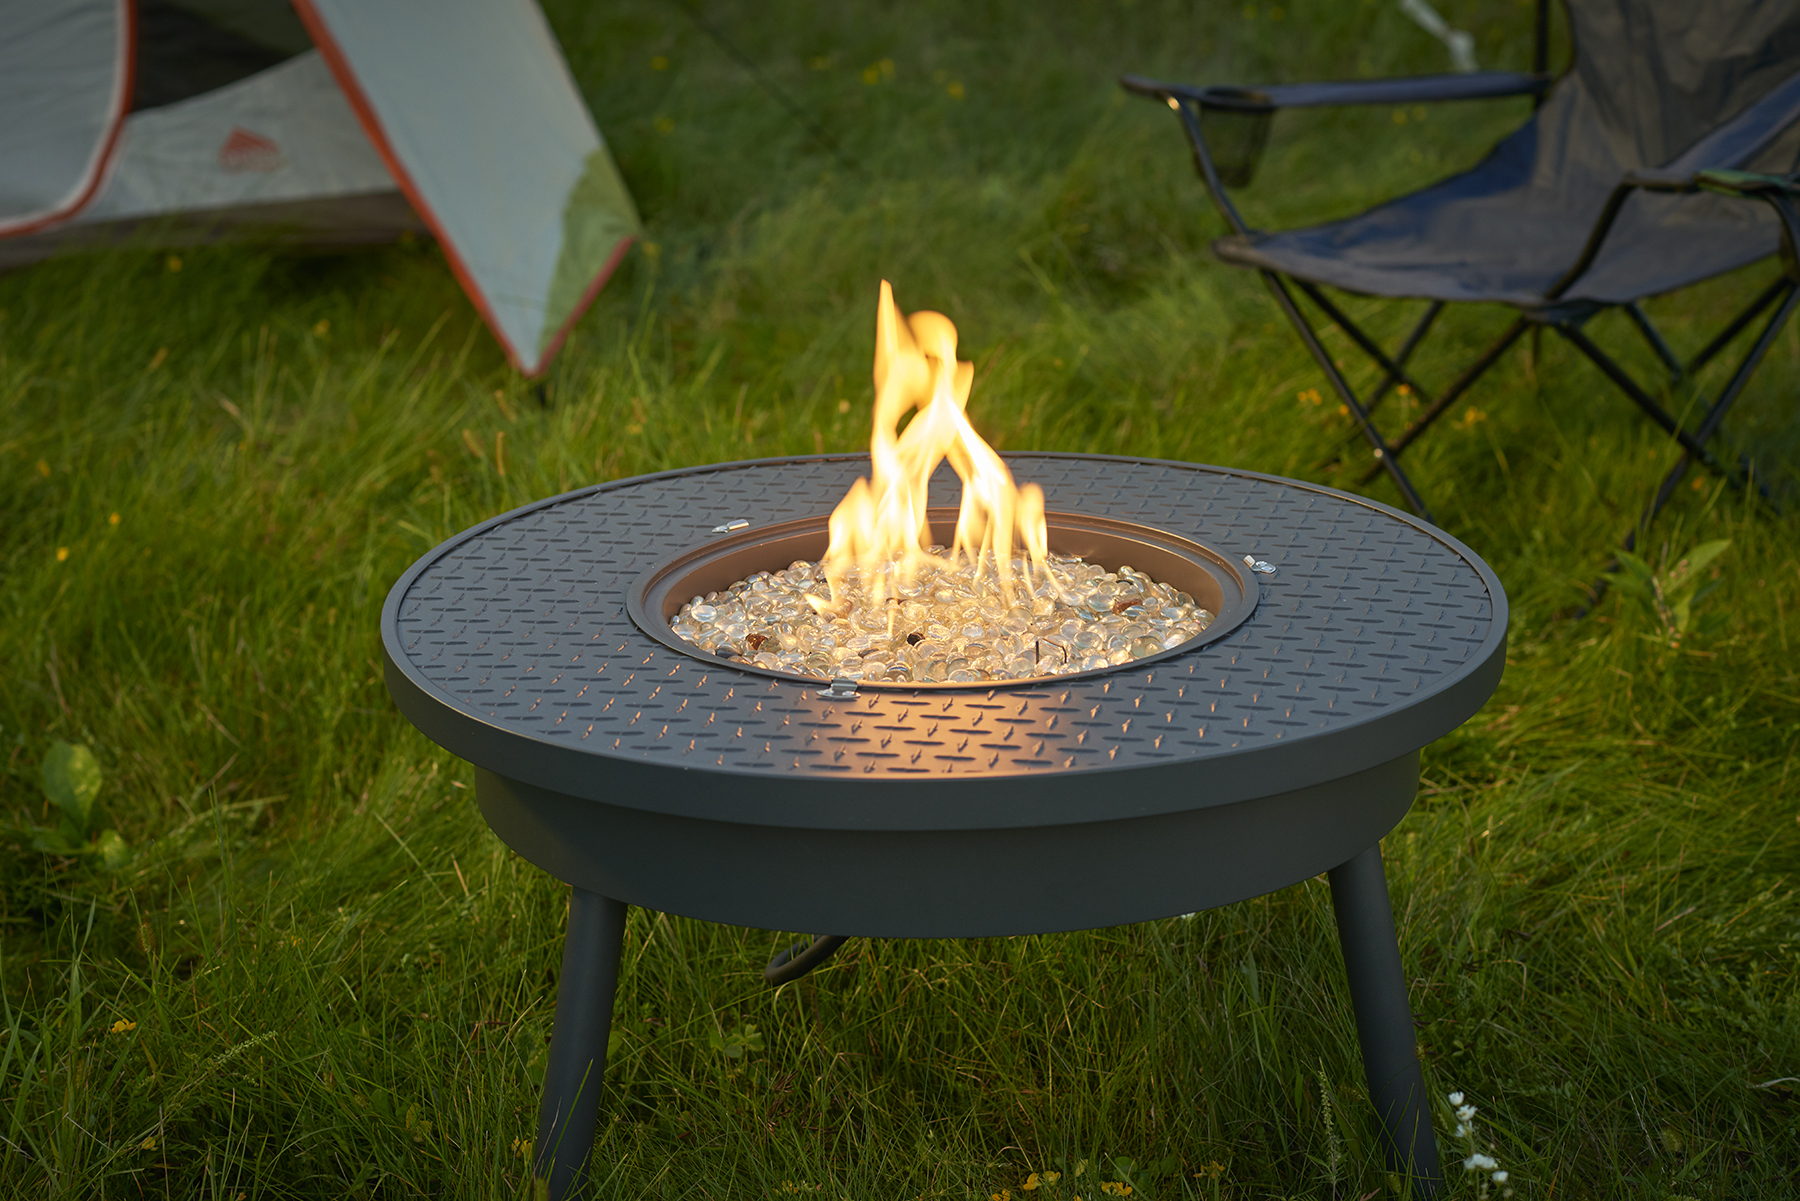 New Portable Gas Fire Pit From The Outdoor Greatroom Company